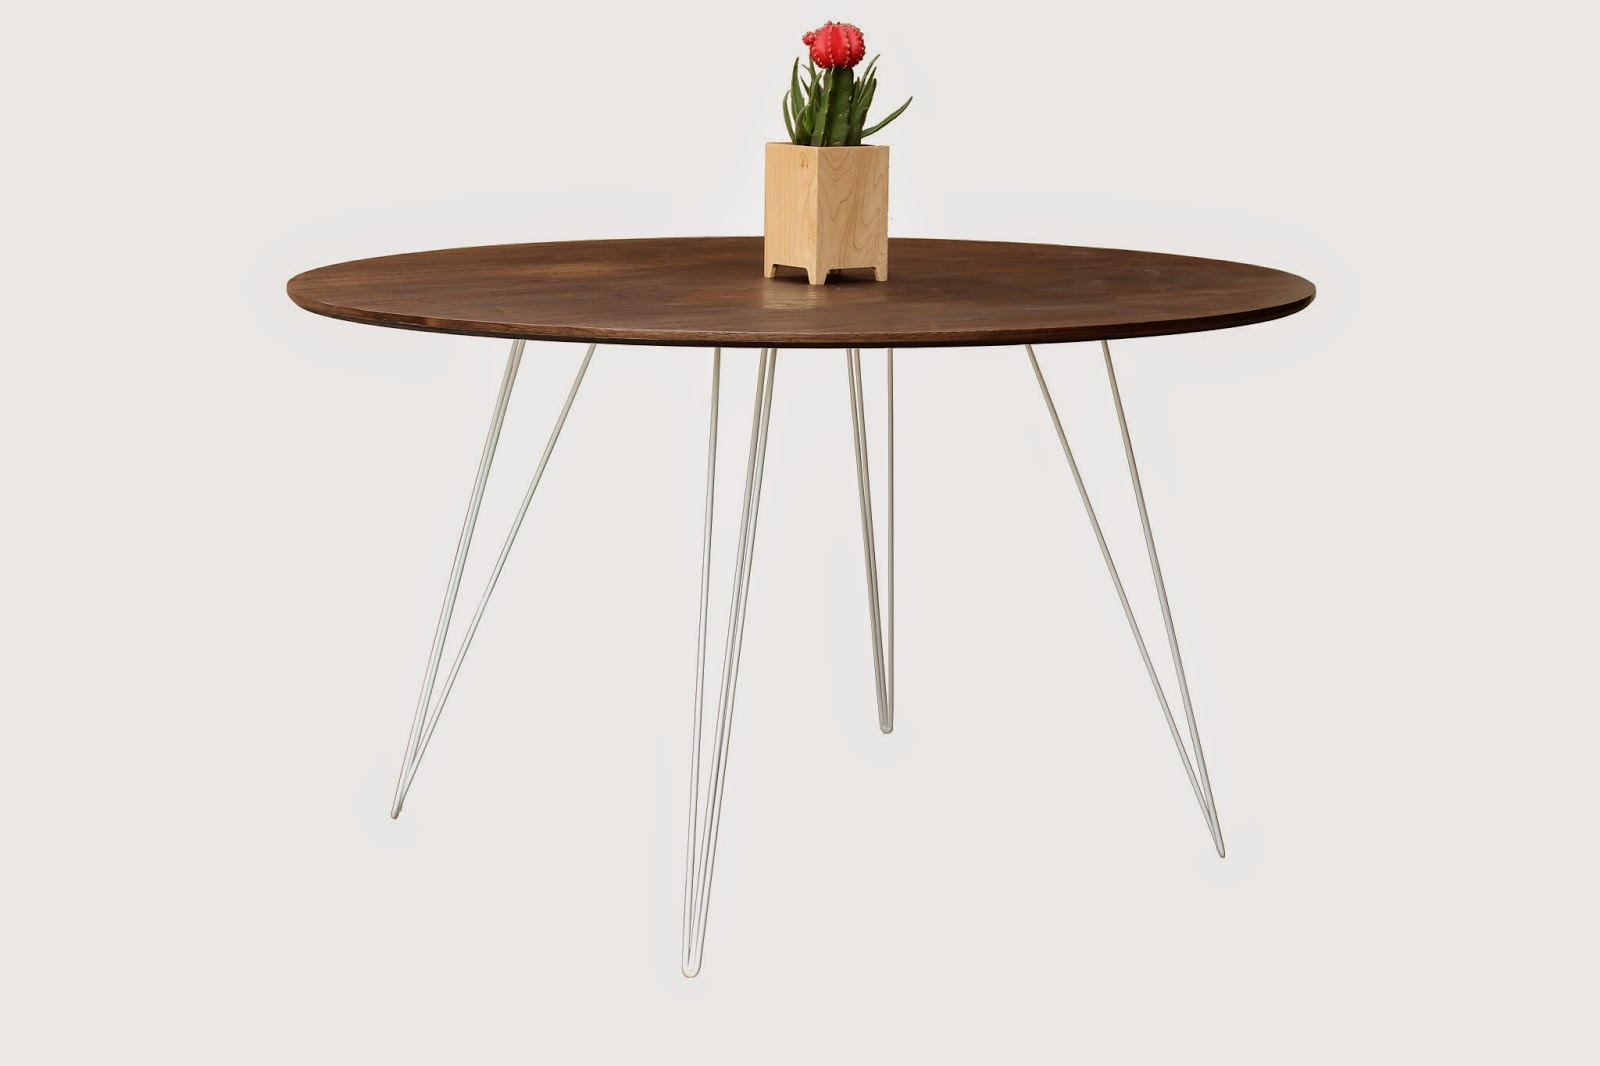 Williams Collection Dining Table, image courtesy Tronk Design